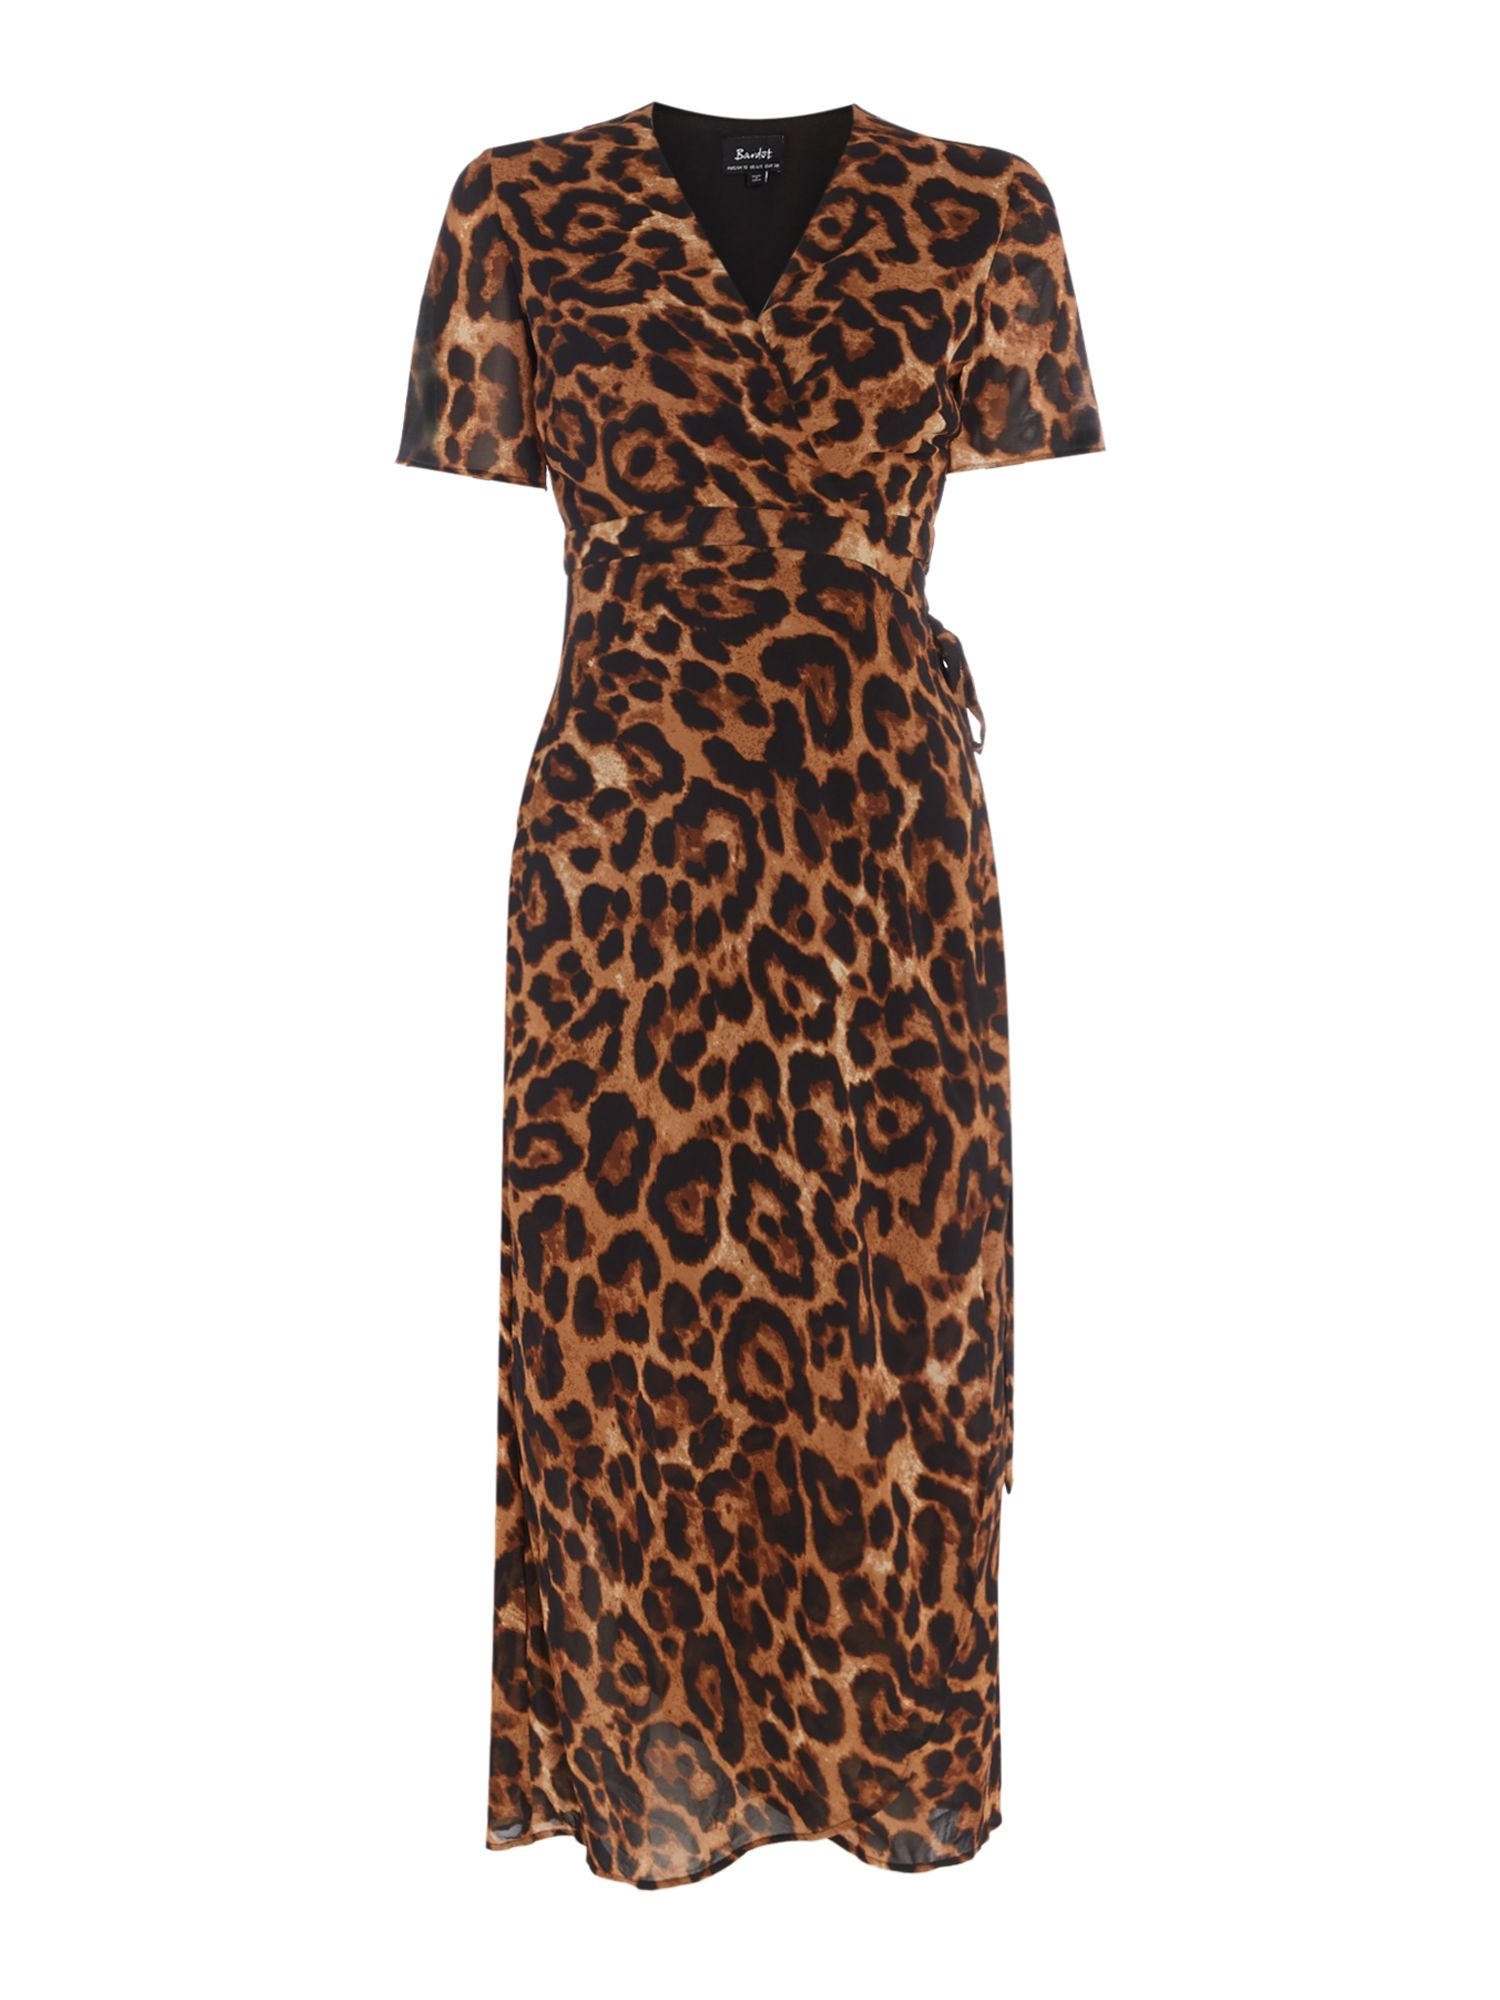 Bardot Short sleeves v neck wrap dress leopard print, Leopard Print